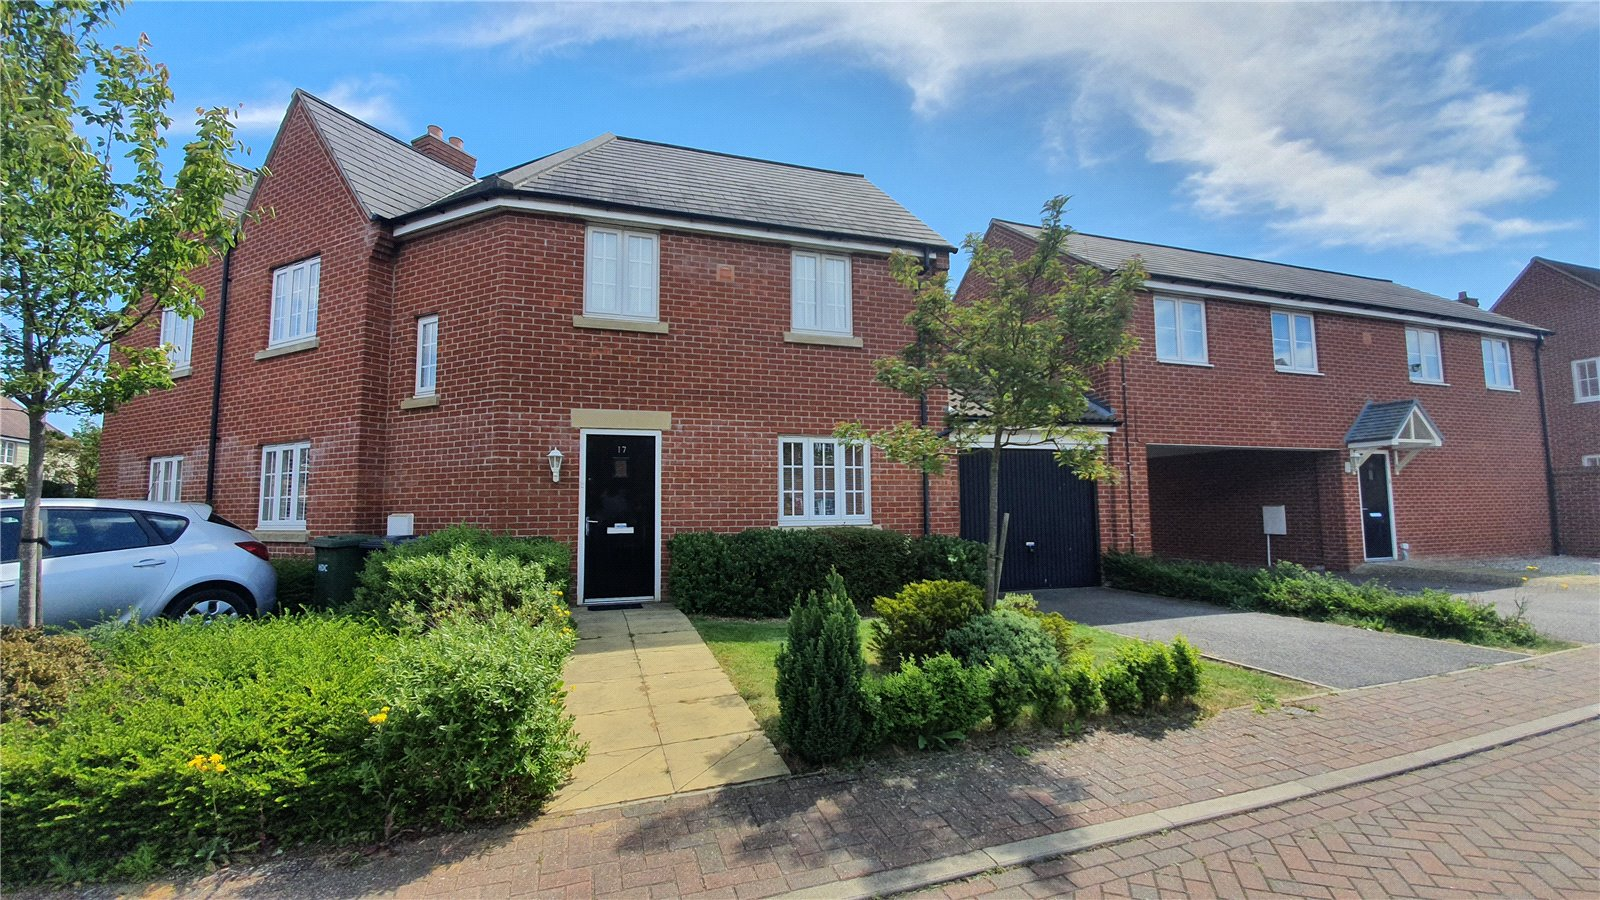 3 bed house for sale in St. Neots, Dixy Close, PE19 6BA 0